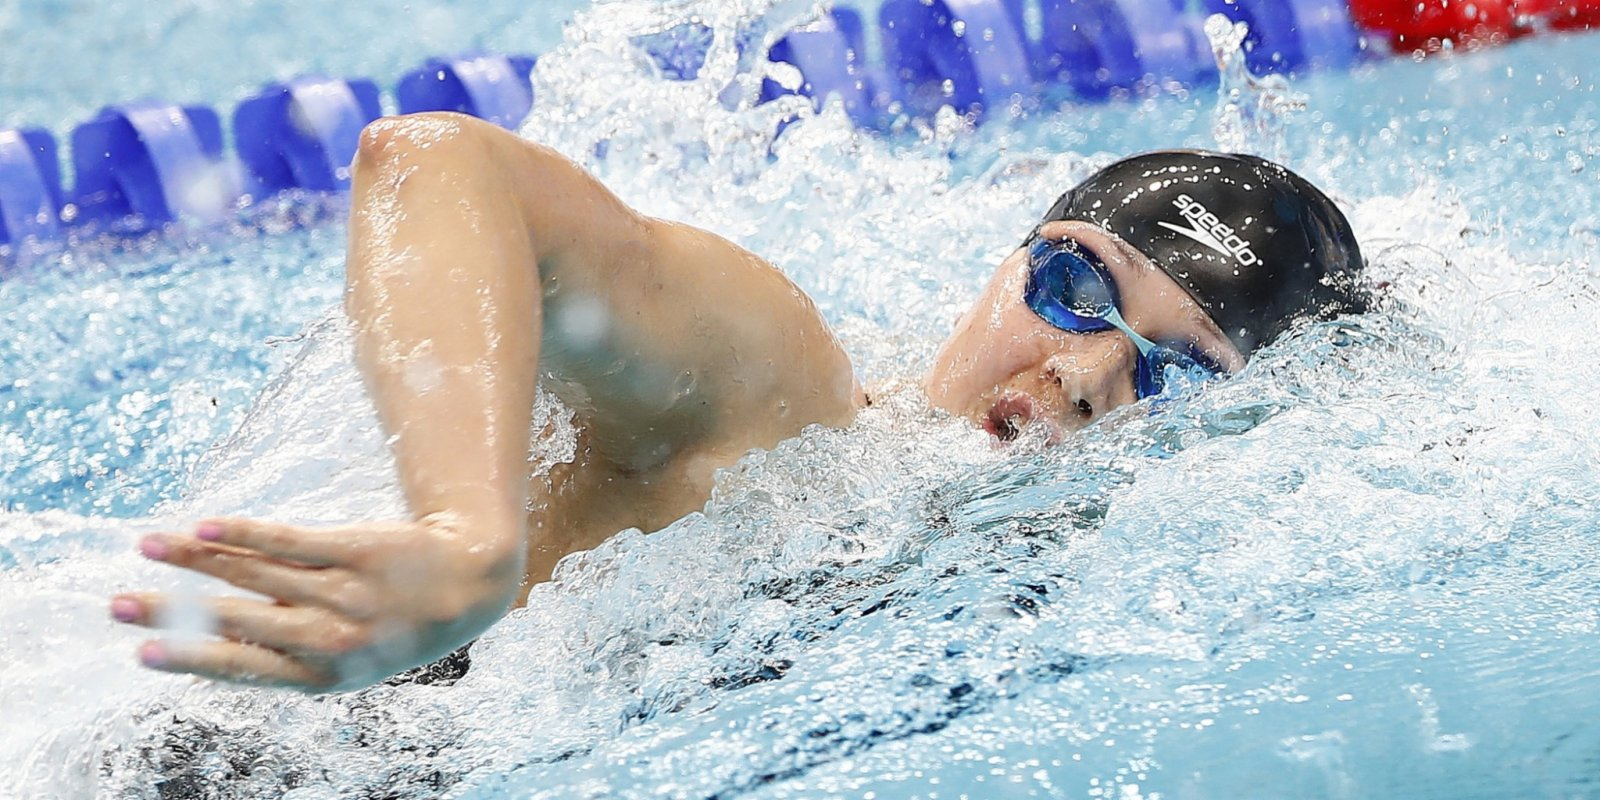 Haughey cruises through to 100m freestyle final in record time